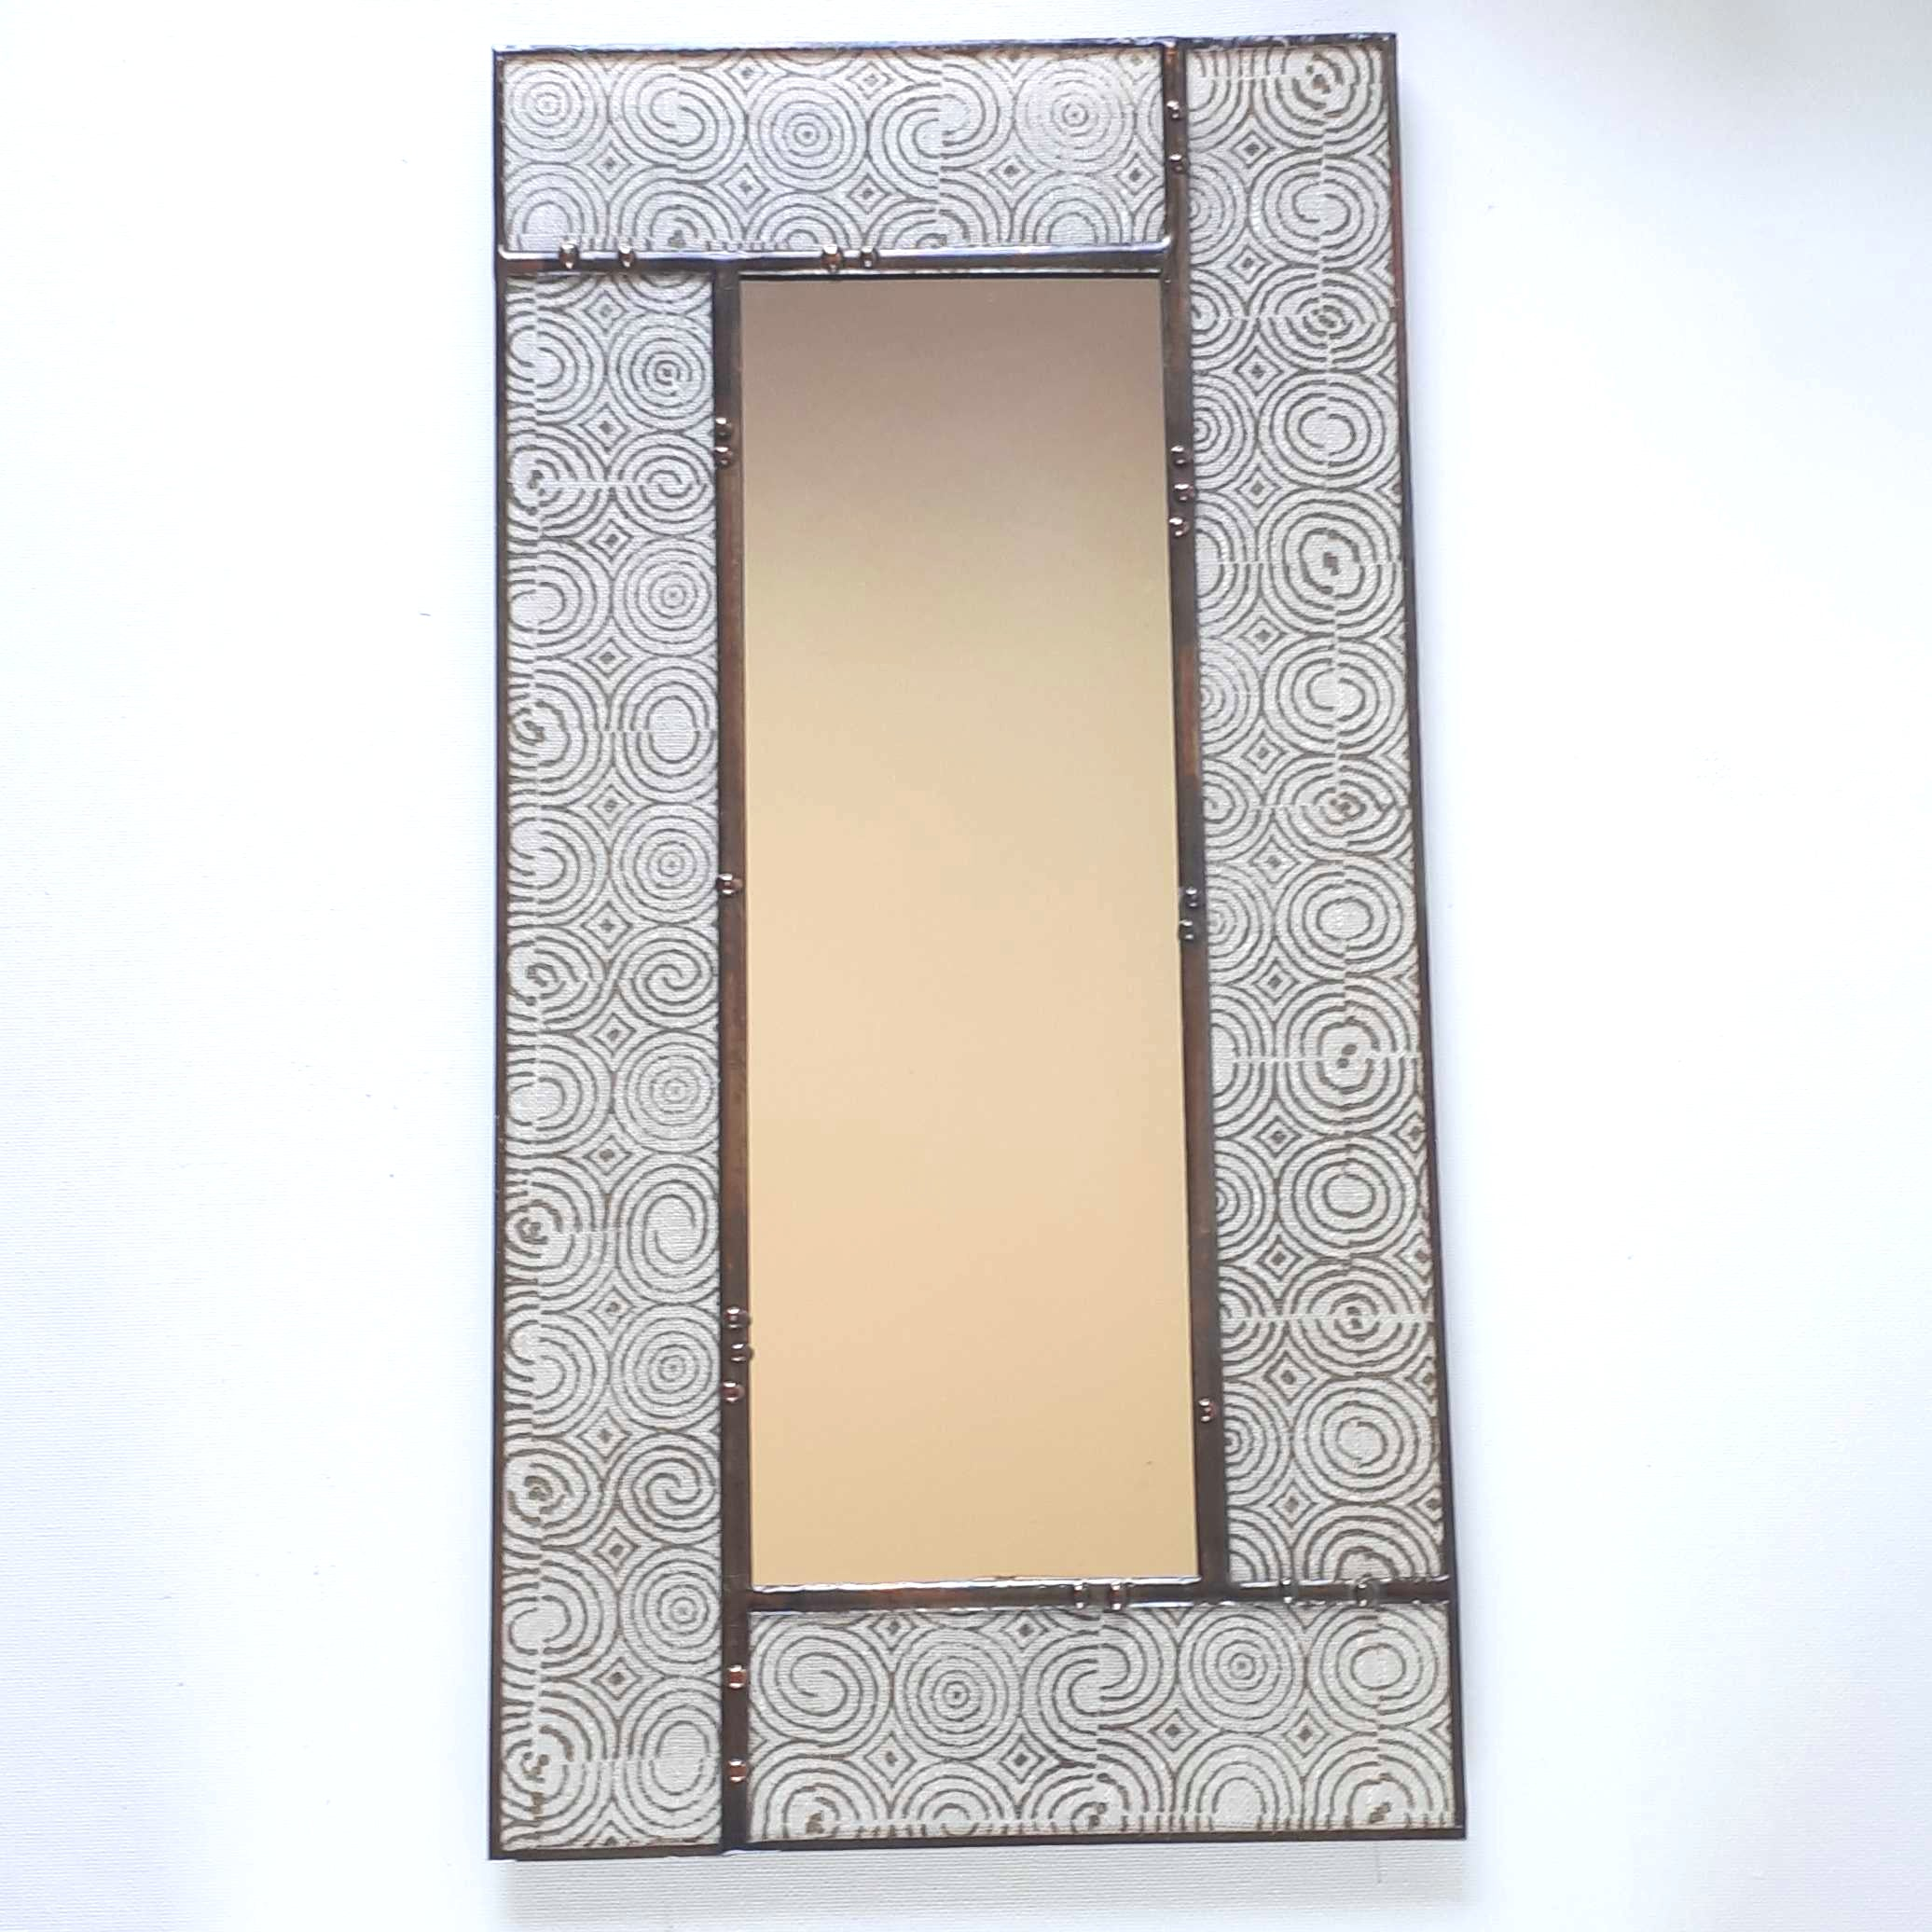 Olive Indian Block-Print  Mirror